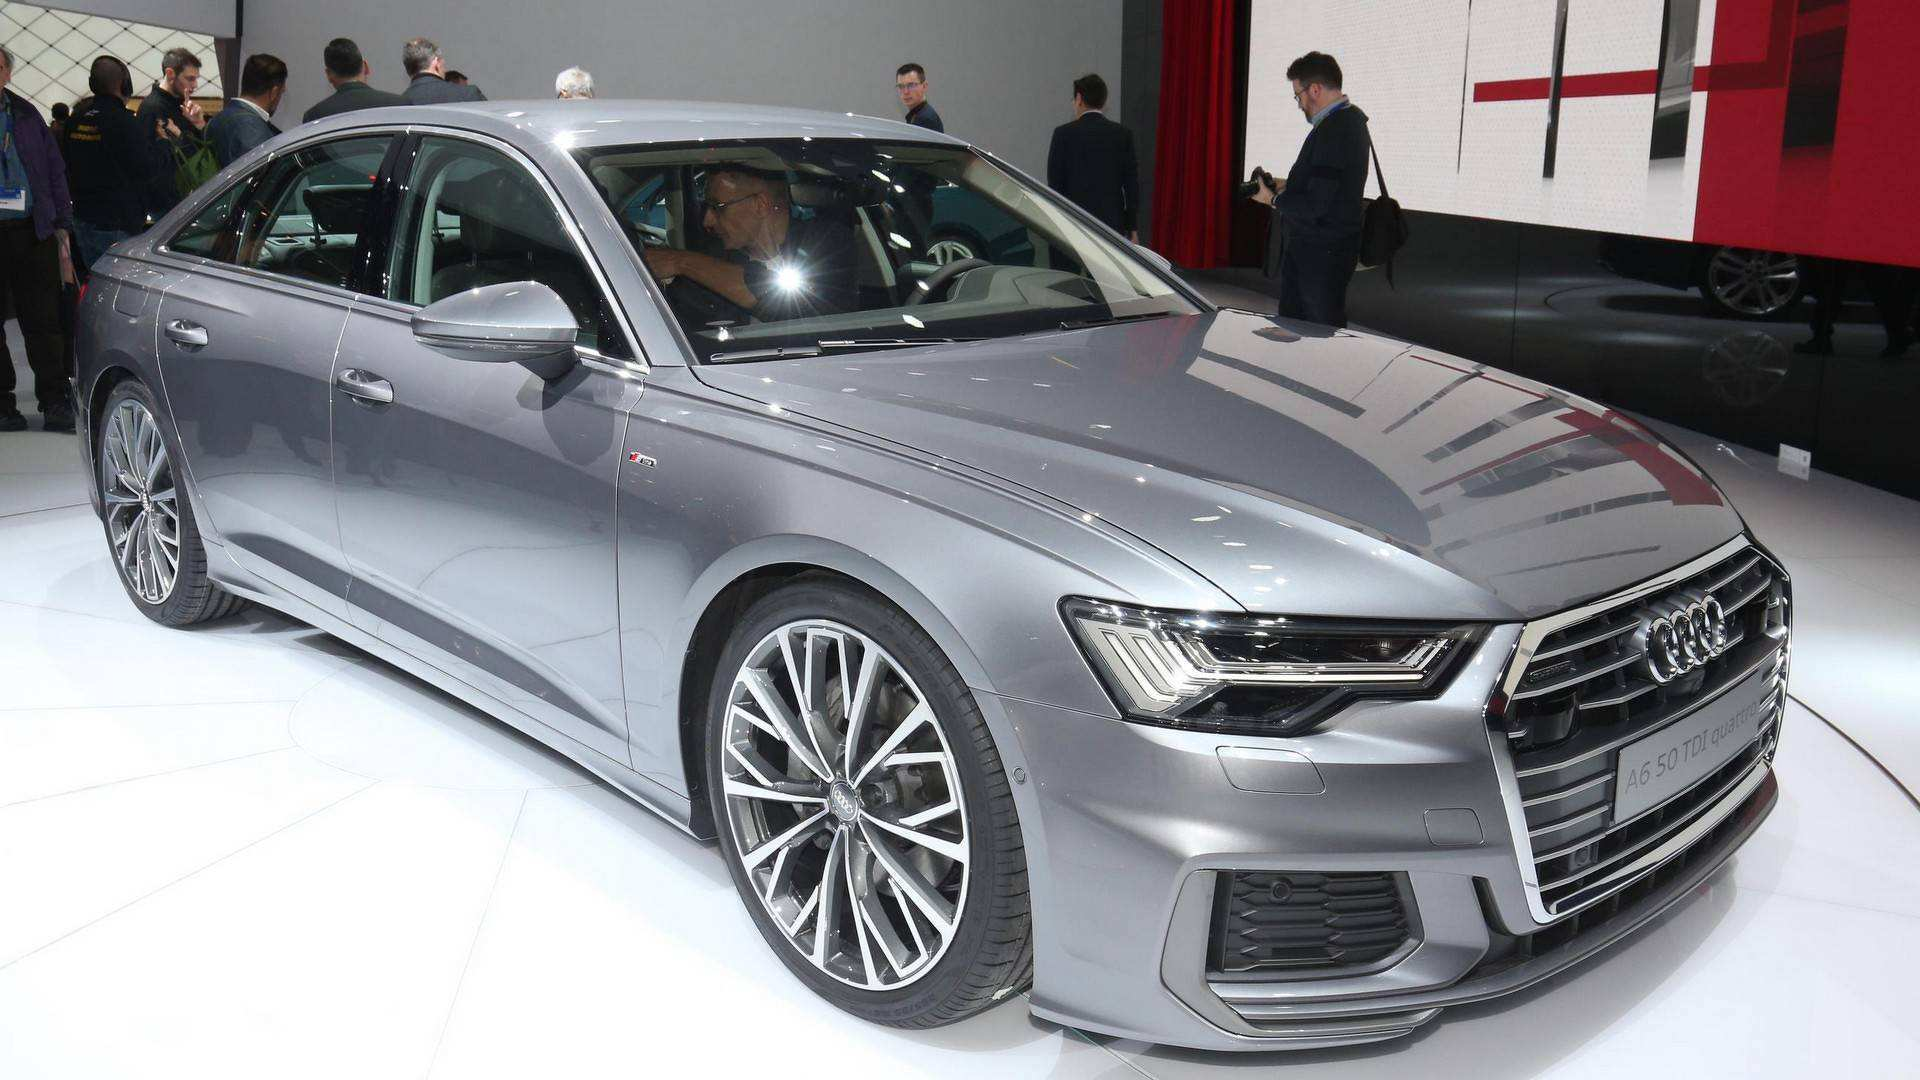 39 New 2020 Audi A6 Comes Price And Release Date